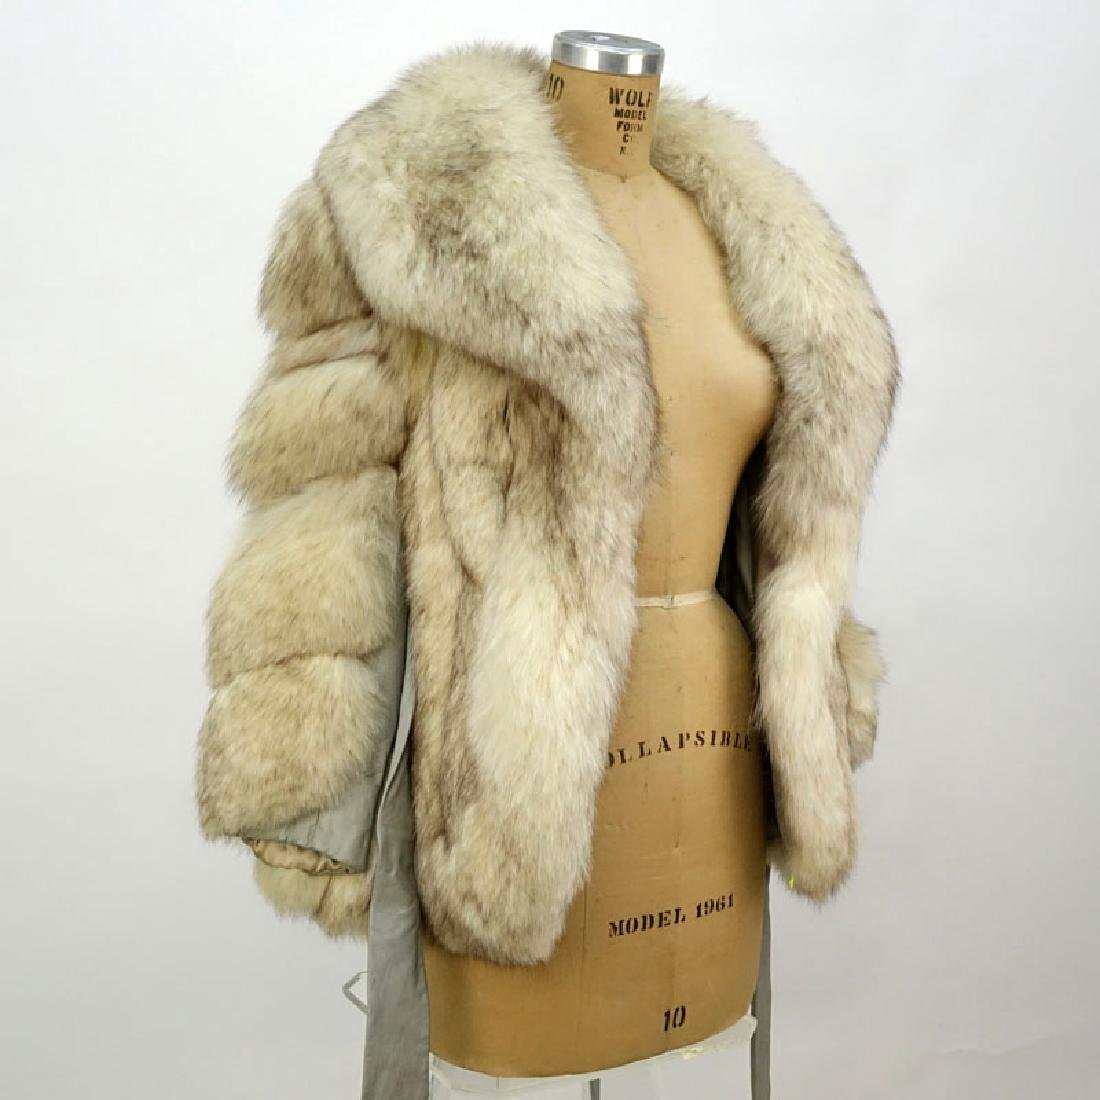 Lady's Vintage Fox Jacket with Leather Trim. Unsigned.